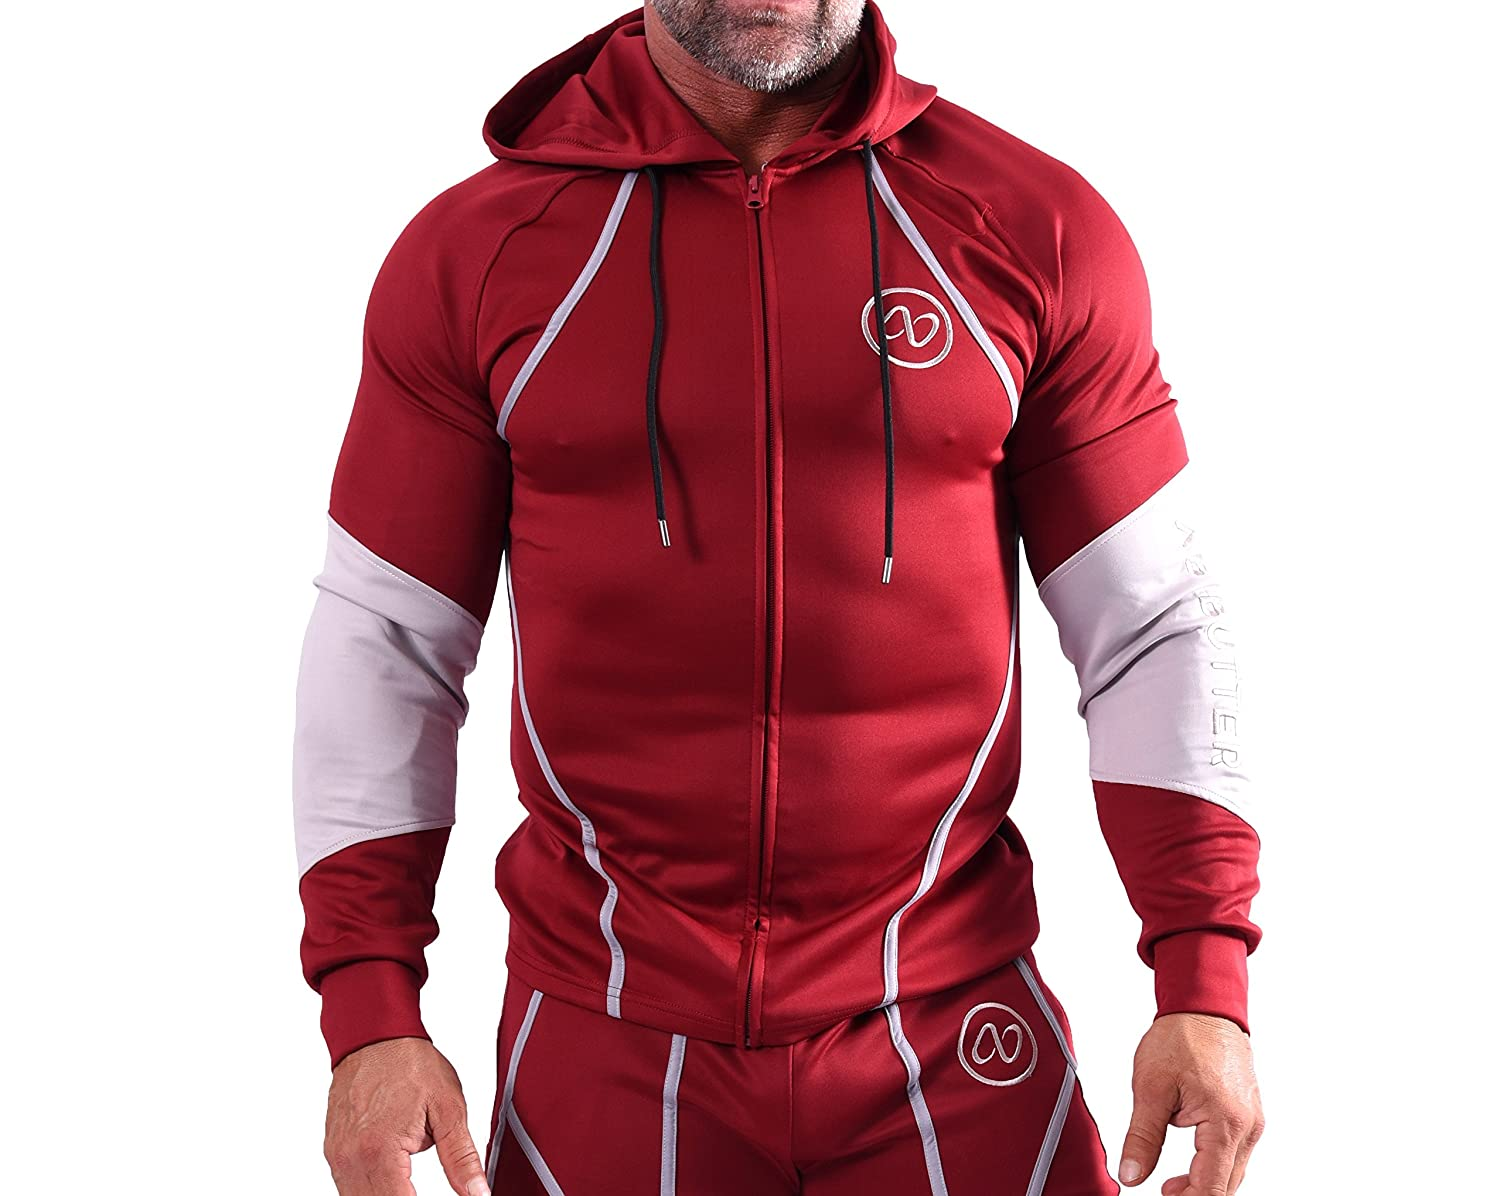 AB Butter Mens Training Hoodie Jacket for Fitness Gym Workout Running